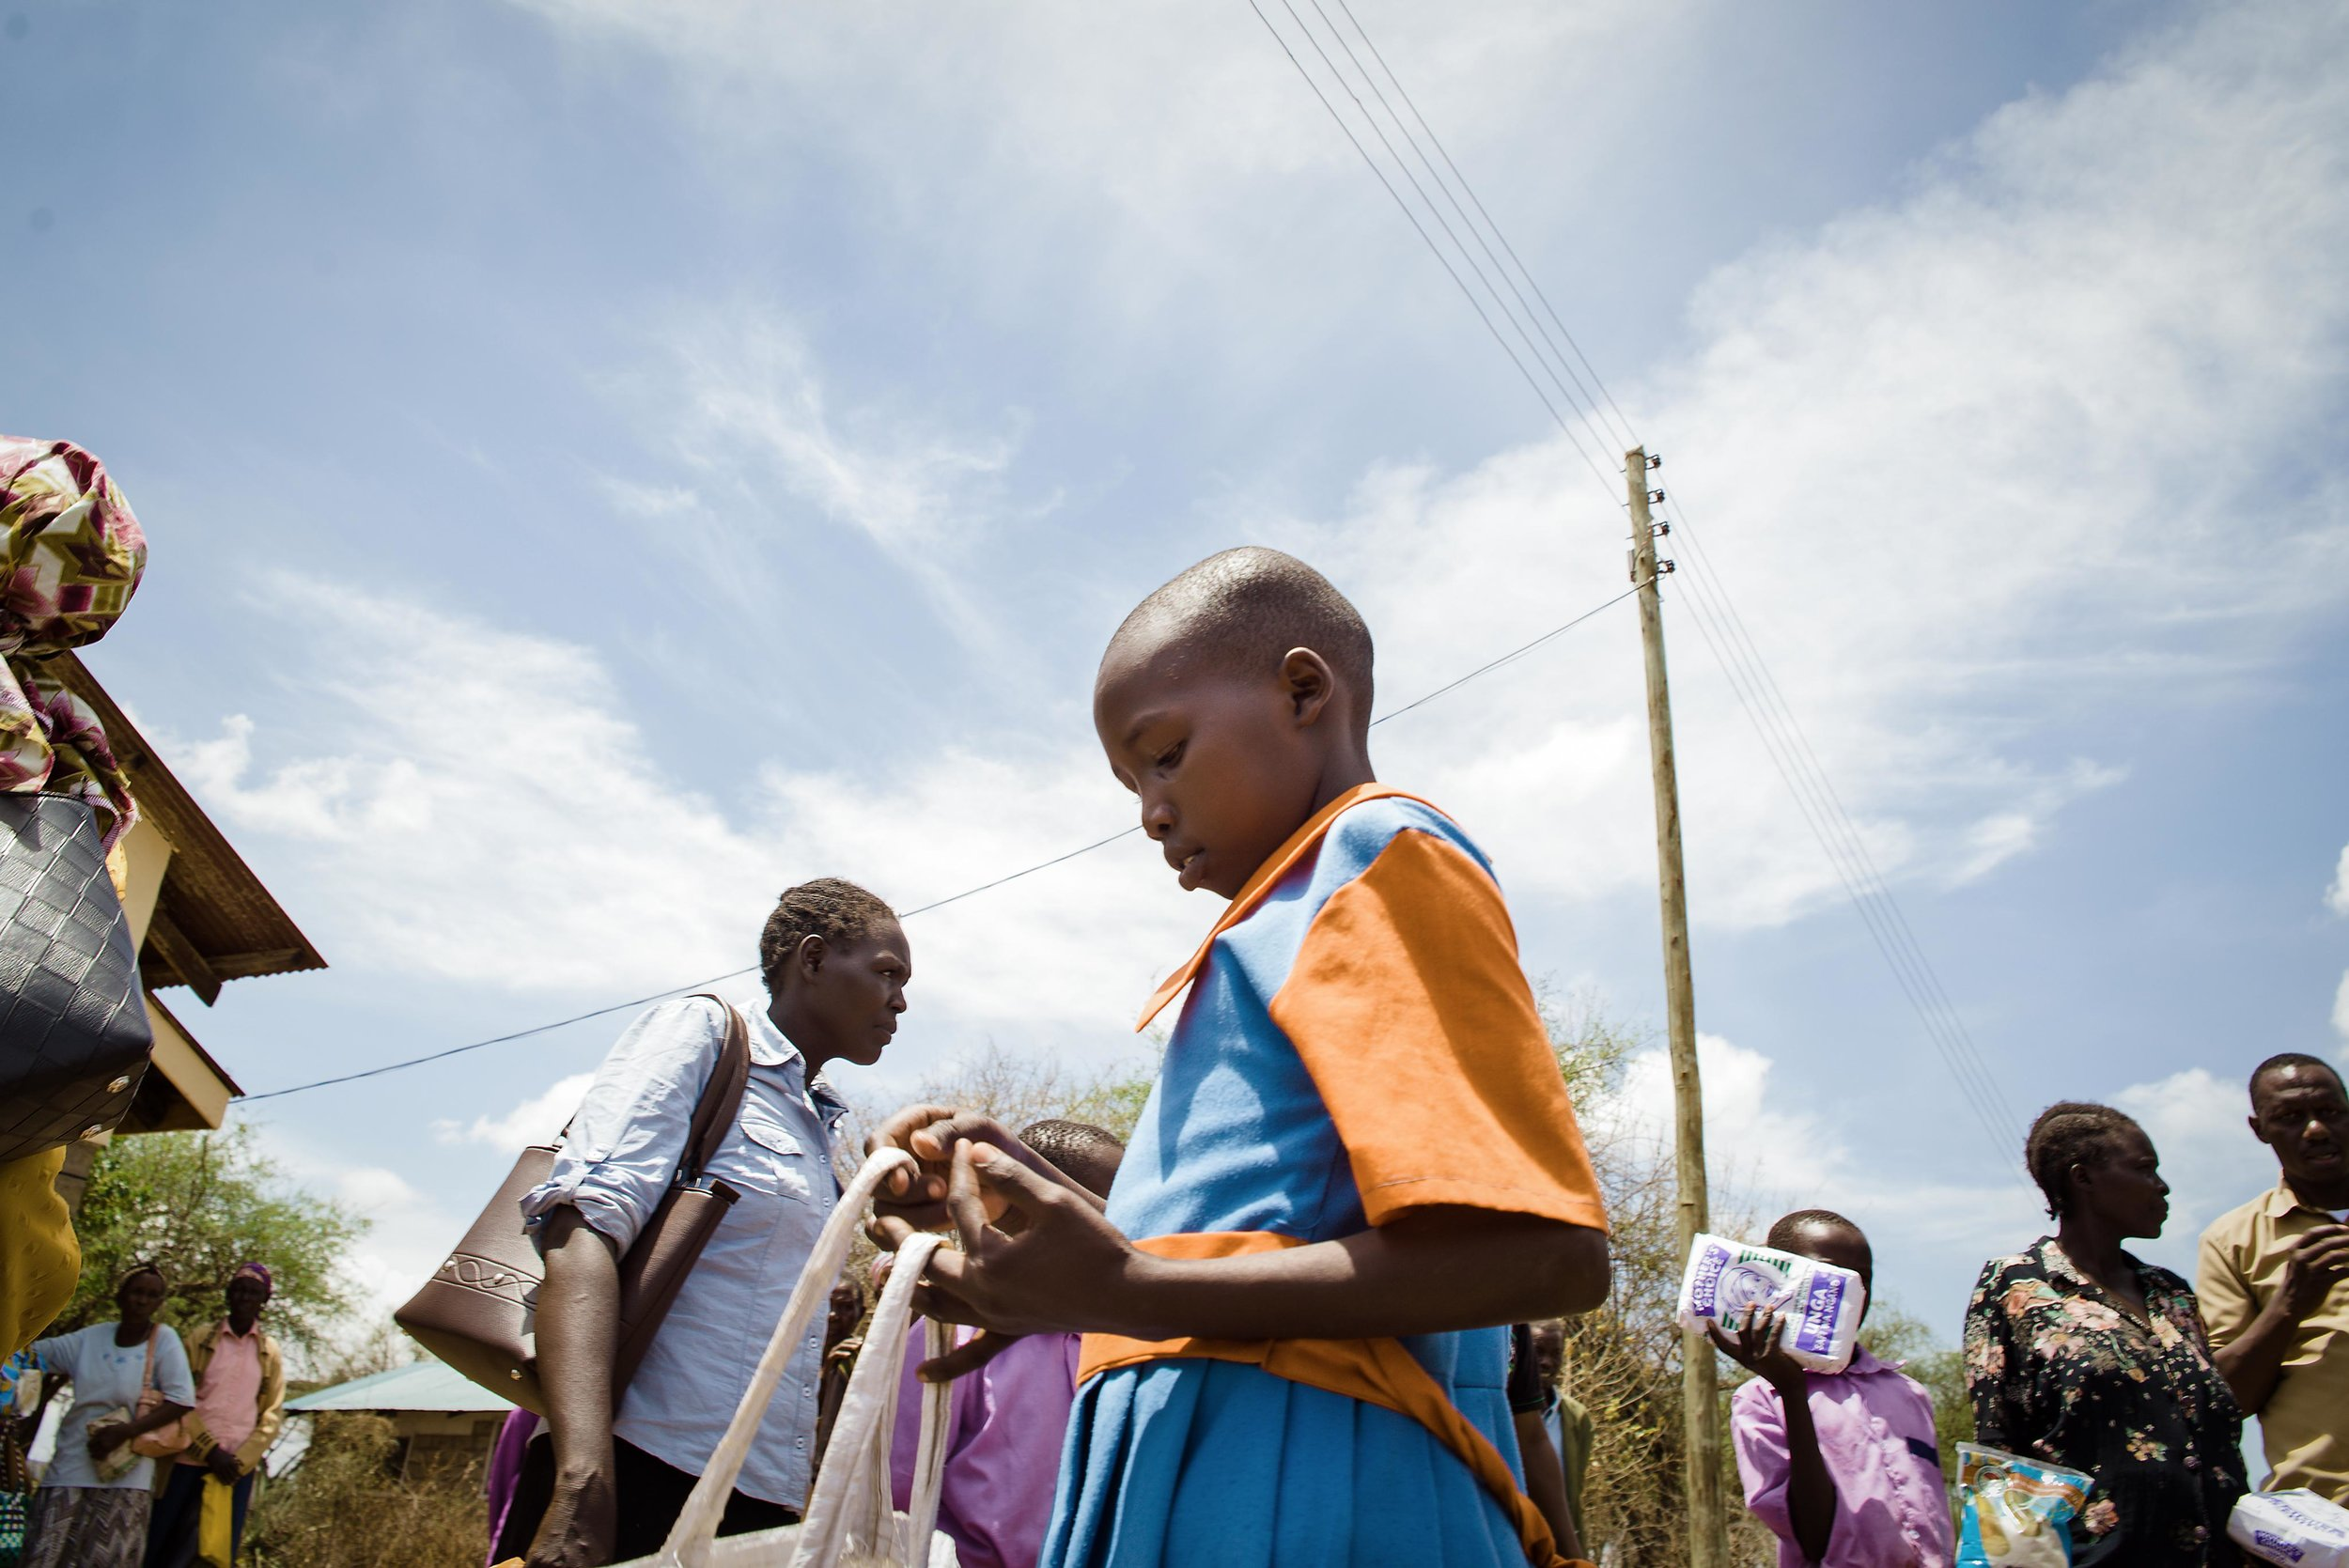 A student inspects her emergency food ration in Baringo County, Kenya. Communities across Kenya's Rift Valley are suffering from severe food insecurity, an ongoing drought and recent infighting in the region only worsening an already dire situation.